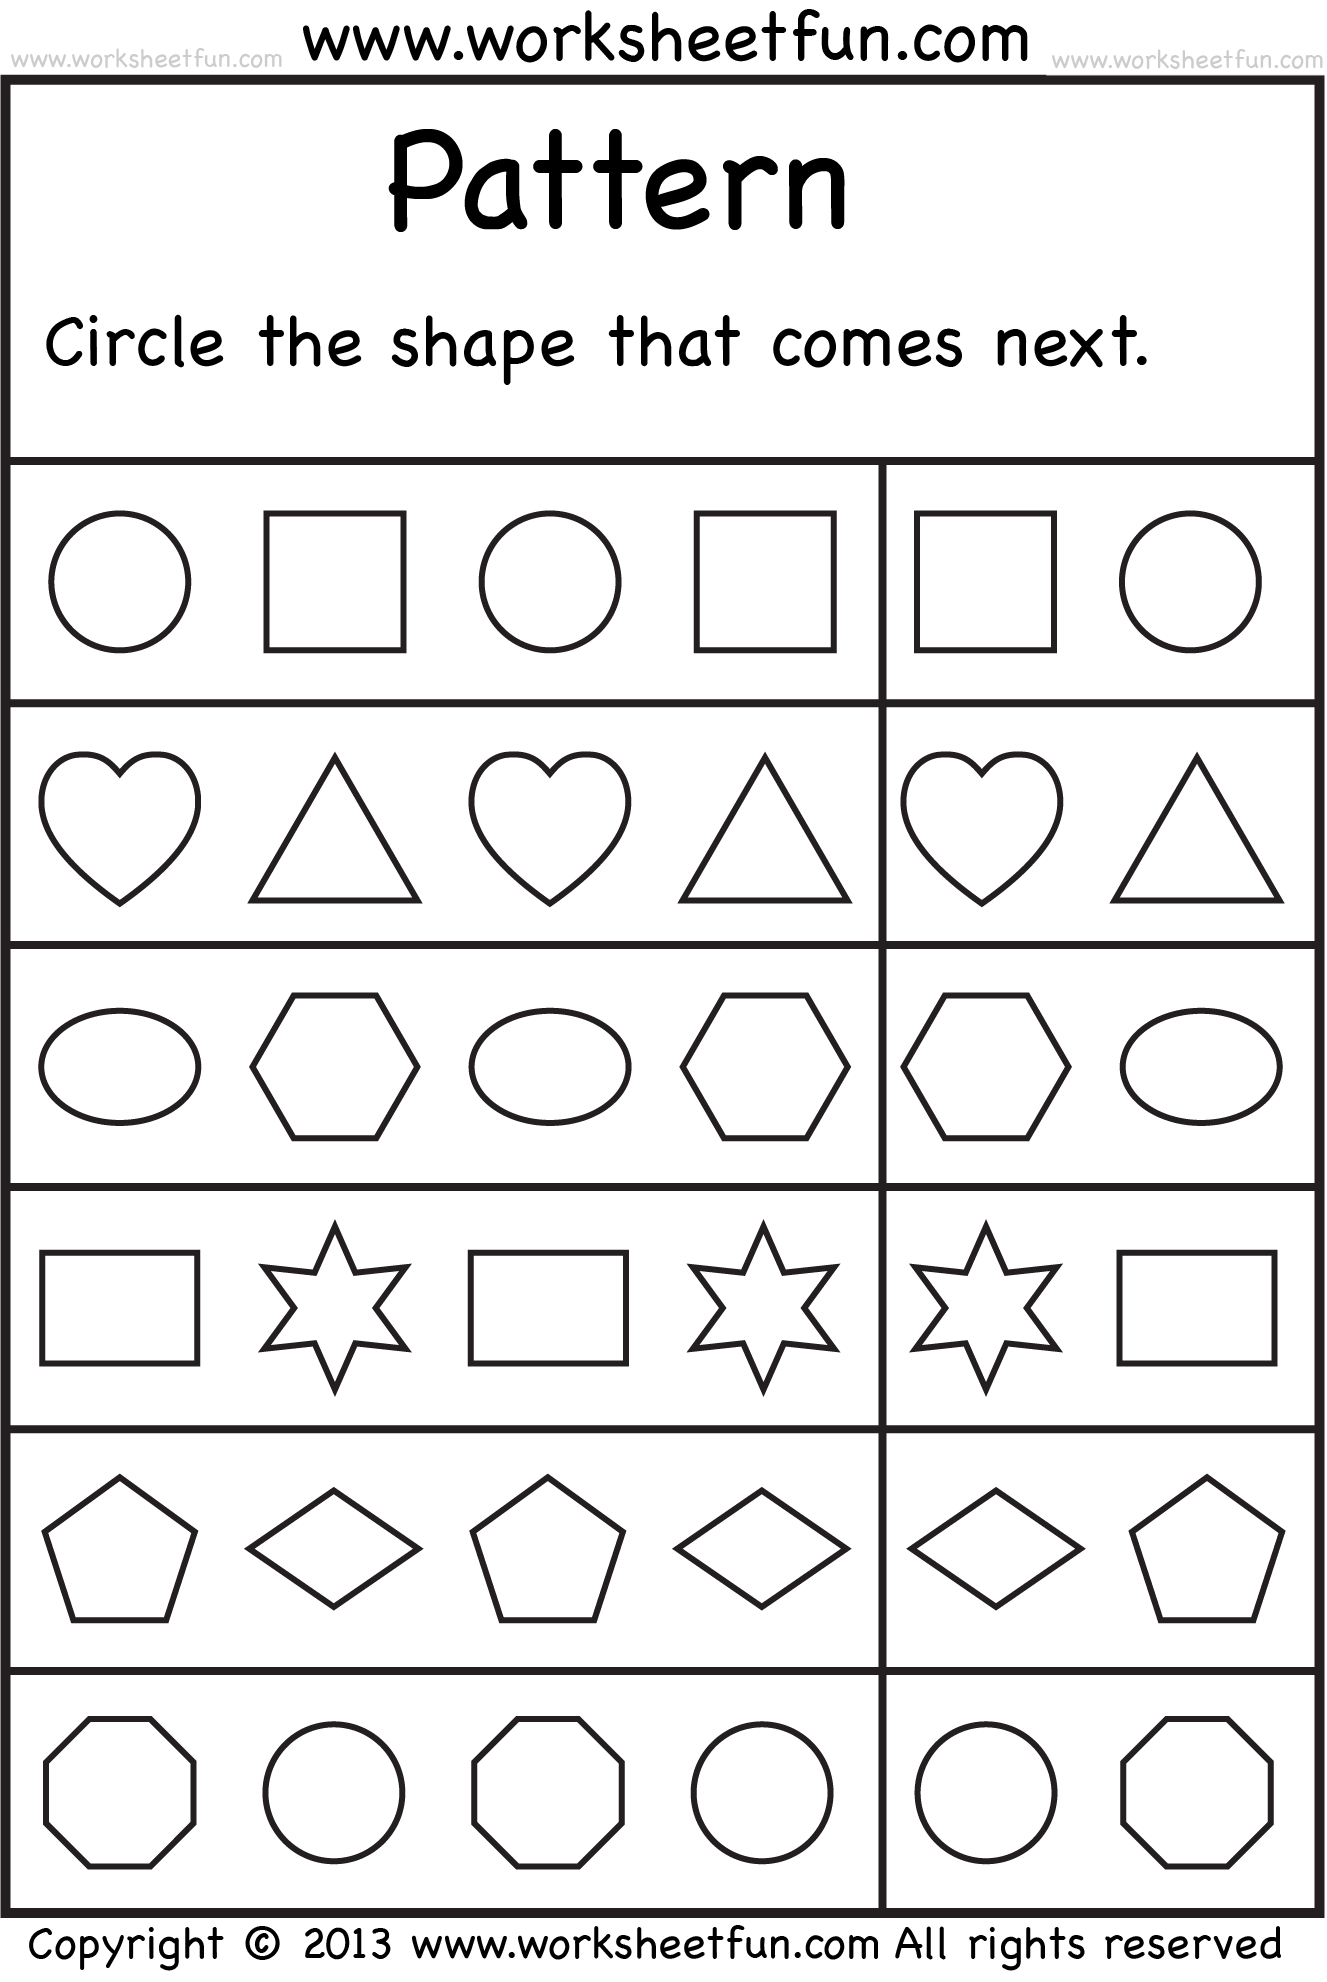 Weirdmailus  Personable  Images About School Worksheets On Pinterest  Number Words  With Fascinating  Images About School Worksheets On Pinterest  Number Words Alphabet Worksheets And Free Printable Kindergarten Worksheets With Awesome Word Problems Addition And Subtraction Worksheets Also Agreement Of Subject And Verb Worksheets In Addition D Nets Worksheets And Maths Worksheets For Kg As Well As More And Less Worksheets Kindergarten Additionally Social Studies Map Skills Worksheets From Pinterestcom With Weirdmailus  Fascinating  Images About School Worksheets On Pinterest  Number Words  With Awesome  Images About School Worksheets On Pinterest  Number Words Alphabet Worksheets And Free Printable Kindergarten Worksheets And Personable Word Problems Addition And Subtraction Worksheets Also Agreement Of Subject And Verb Worksheets In Addition D Nets Worksheets From Pinterestcom